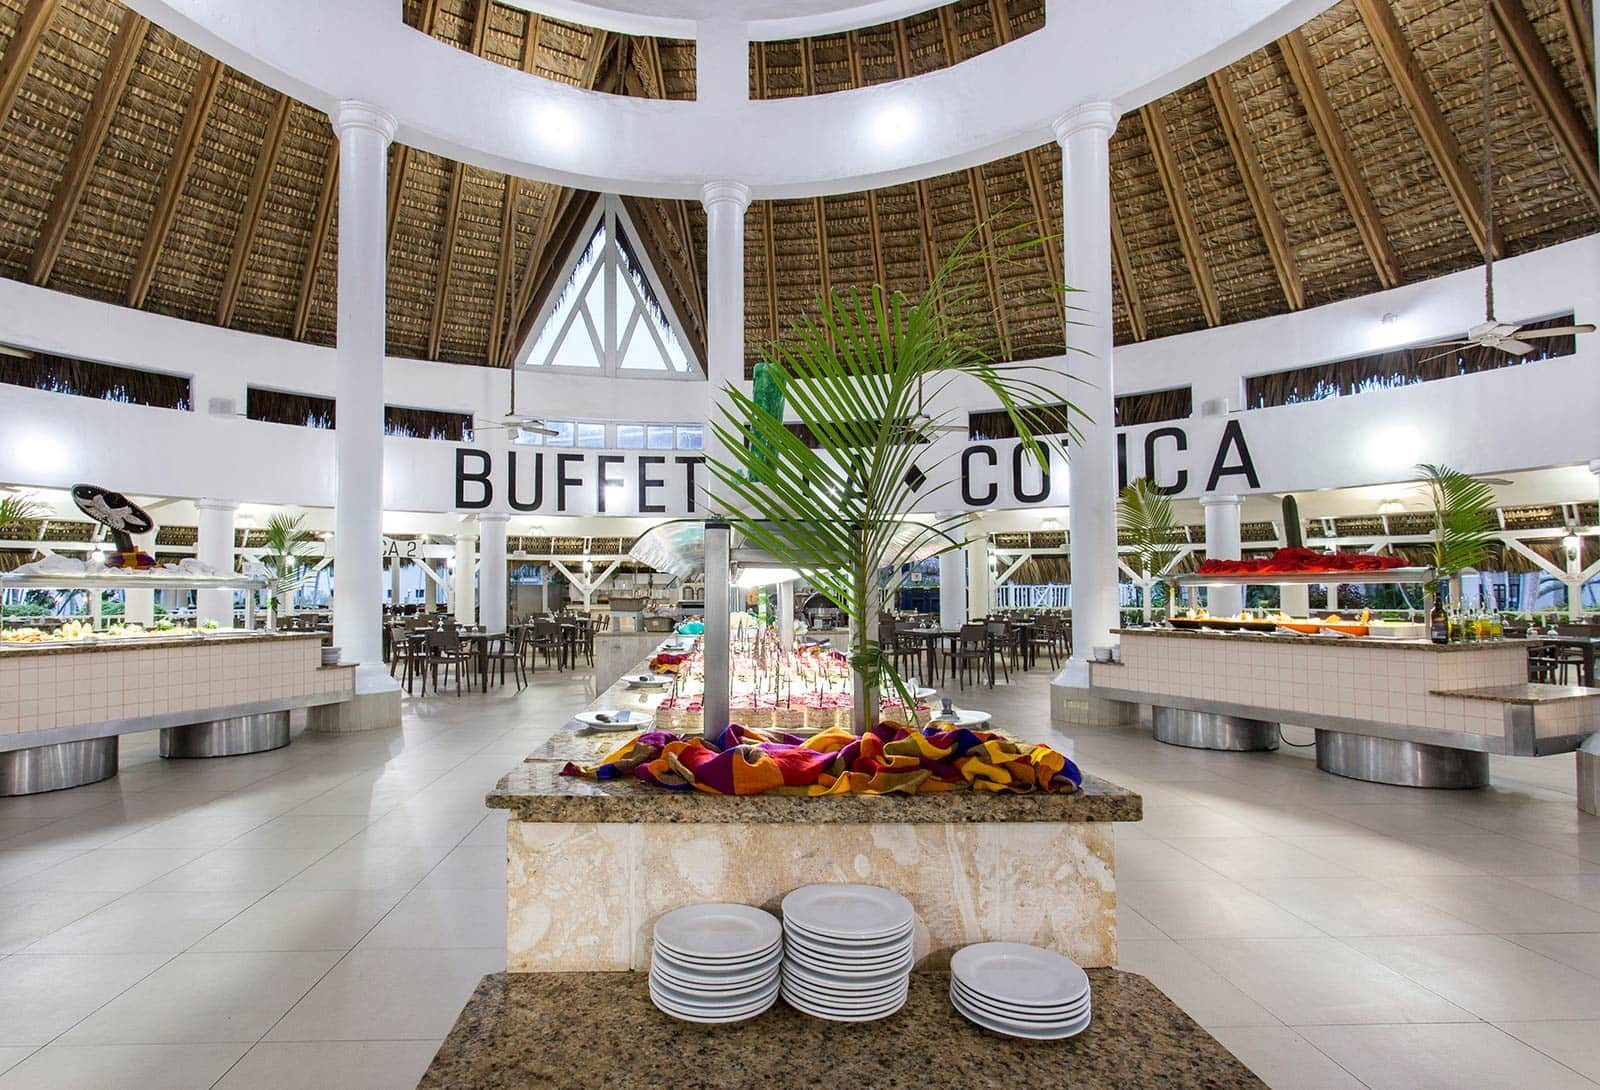 Buffet, Be Live Experience Hamaca Beach